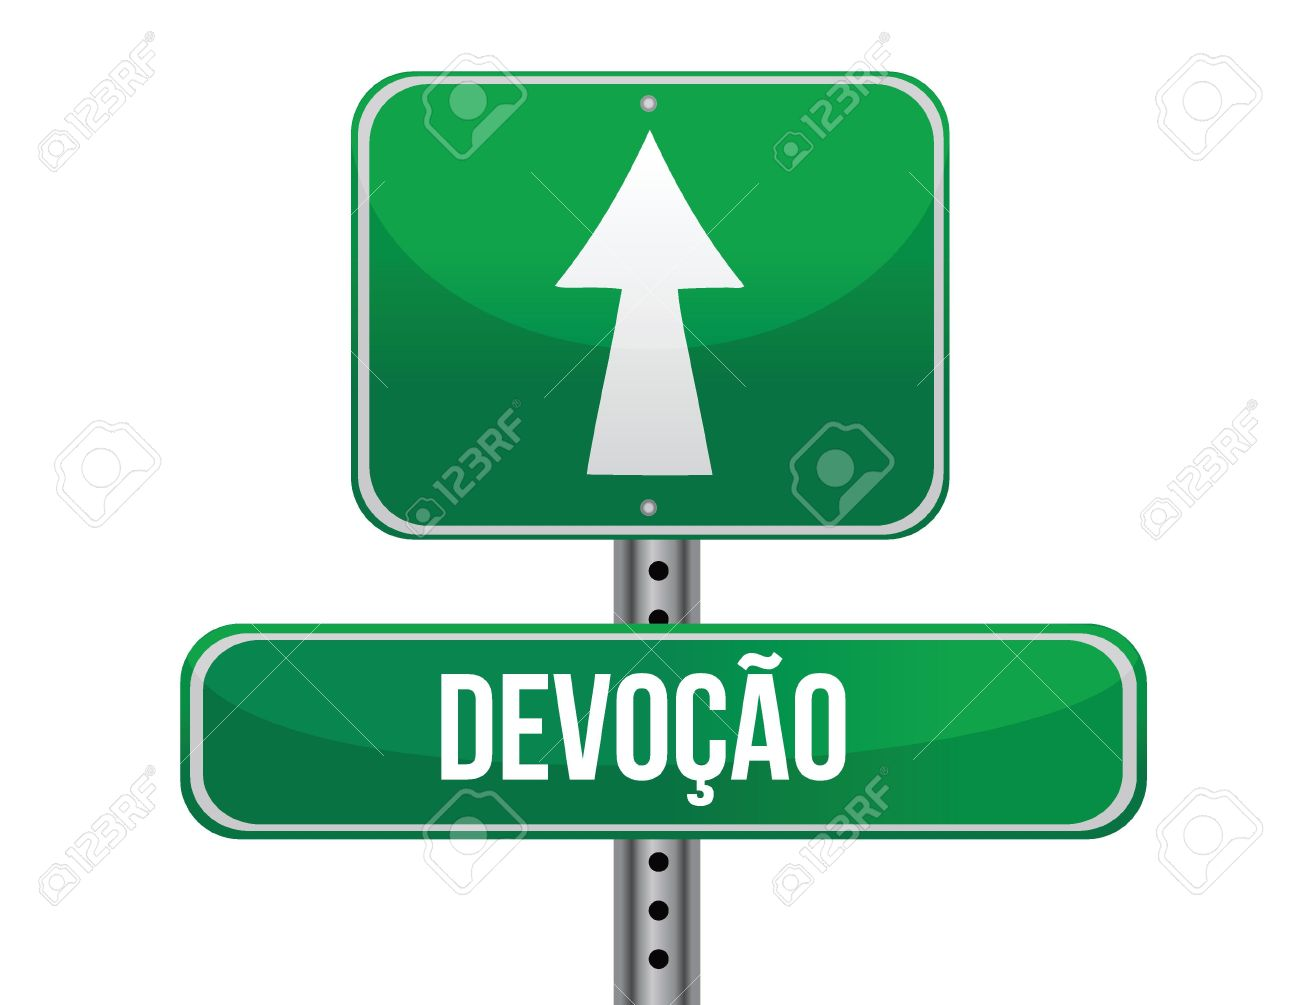 Devotion In Portuguese Traffic Road Sign Illustration Design.